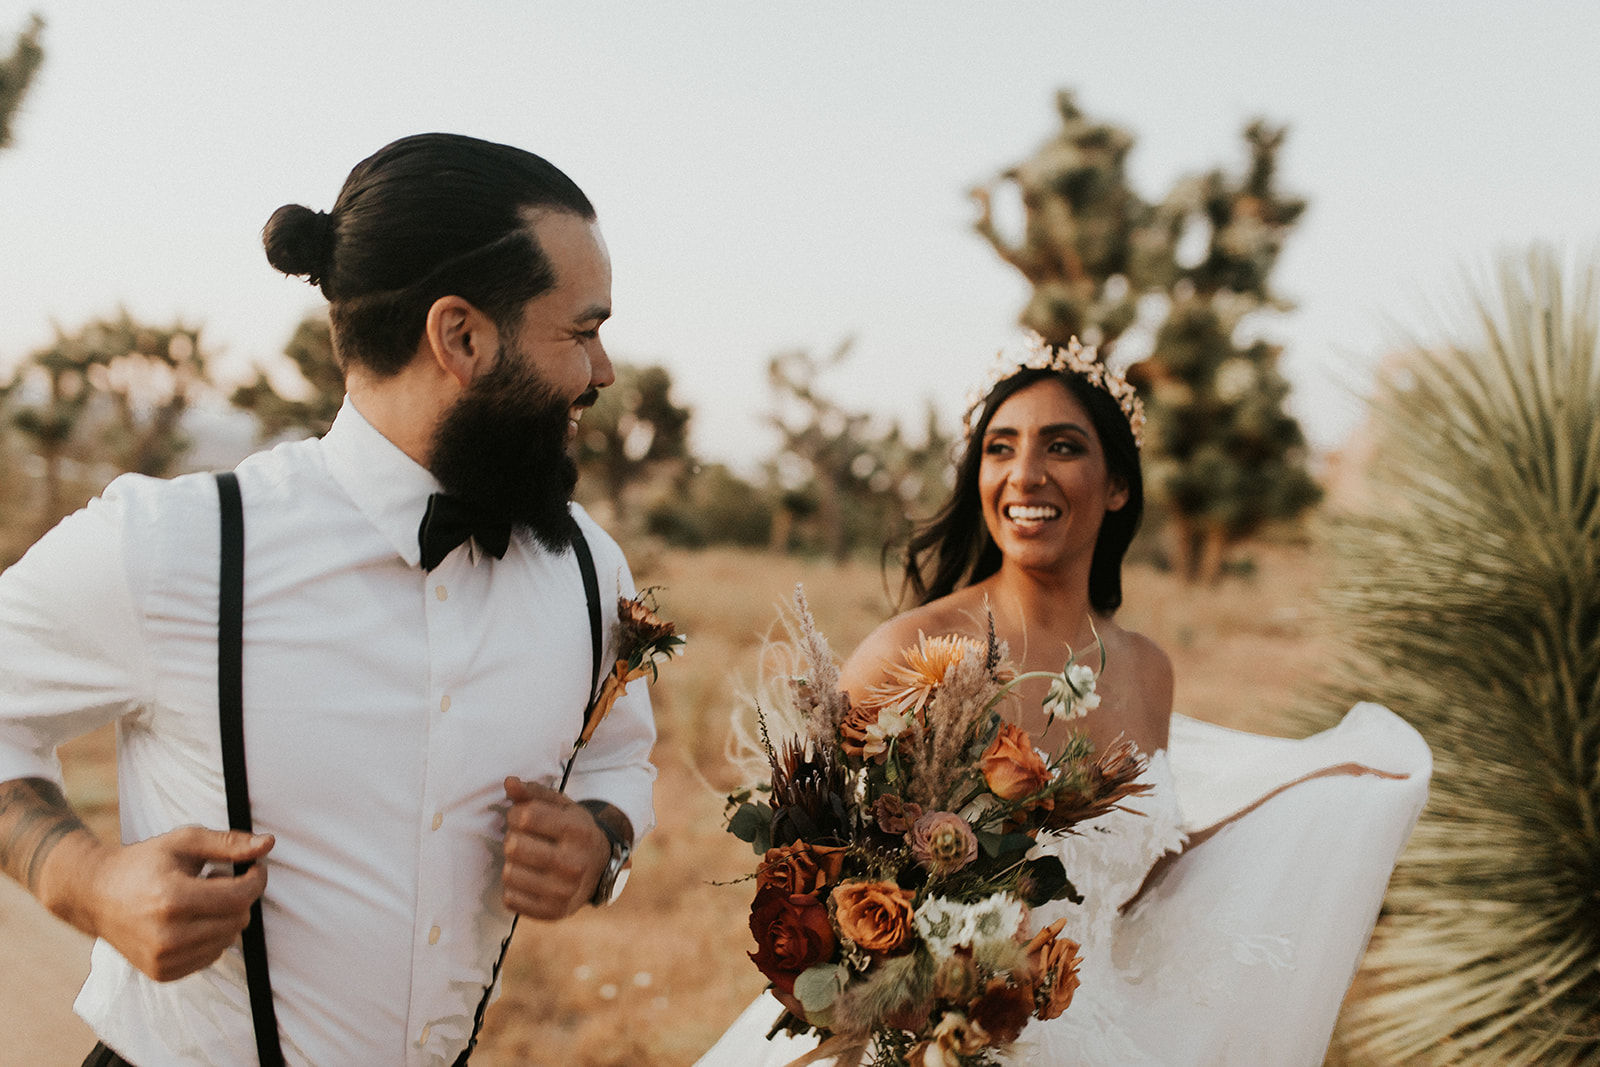 Joshua_Tree_Elopement_Hannah_Alena_Photography-229.jpg